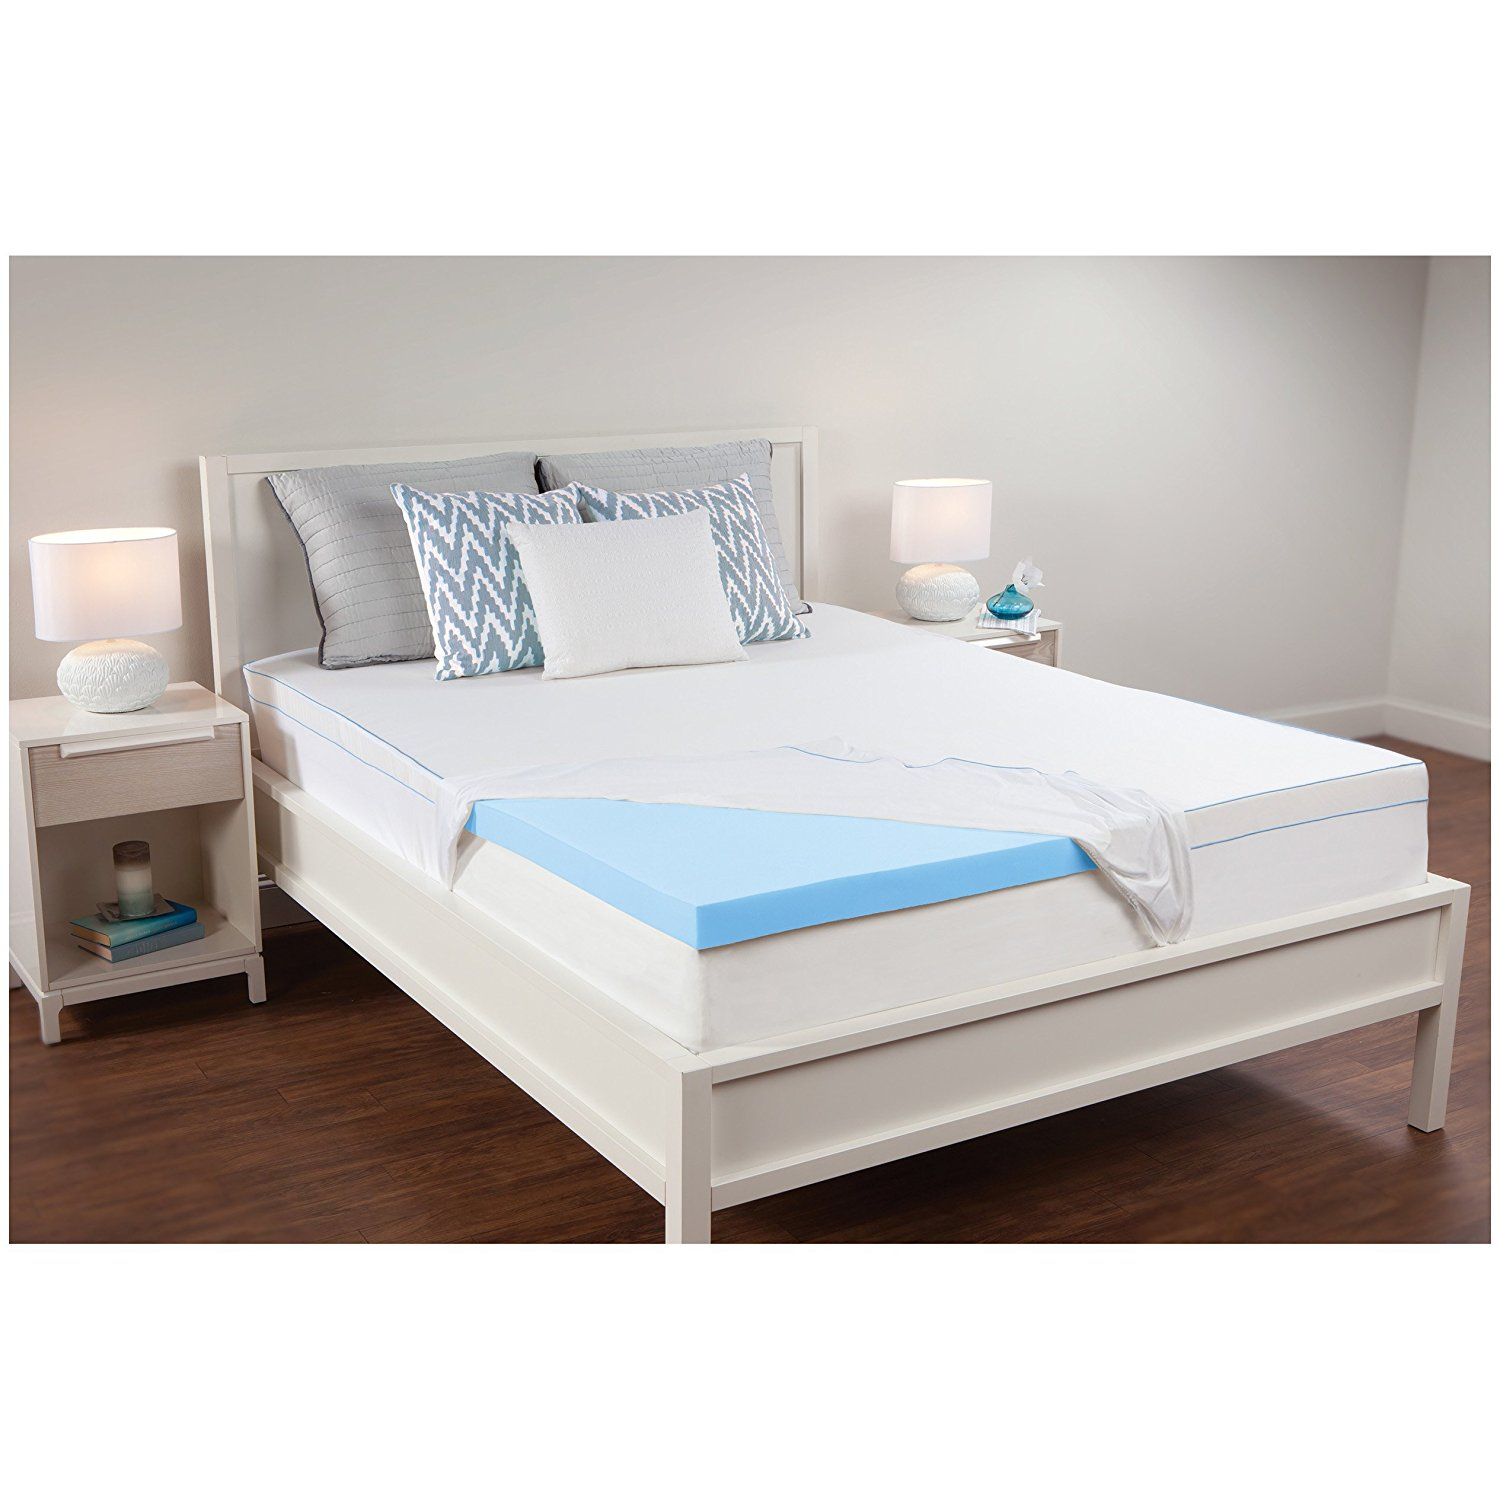 width beds height icomfort ext products mattresses db bed image ah impress mattress medium beard adjustable imagine